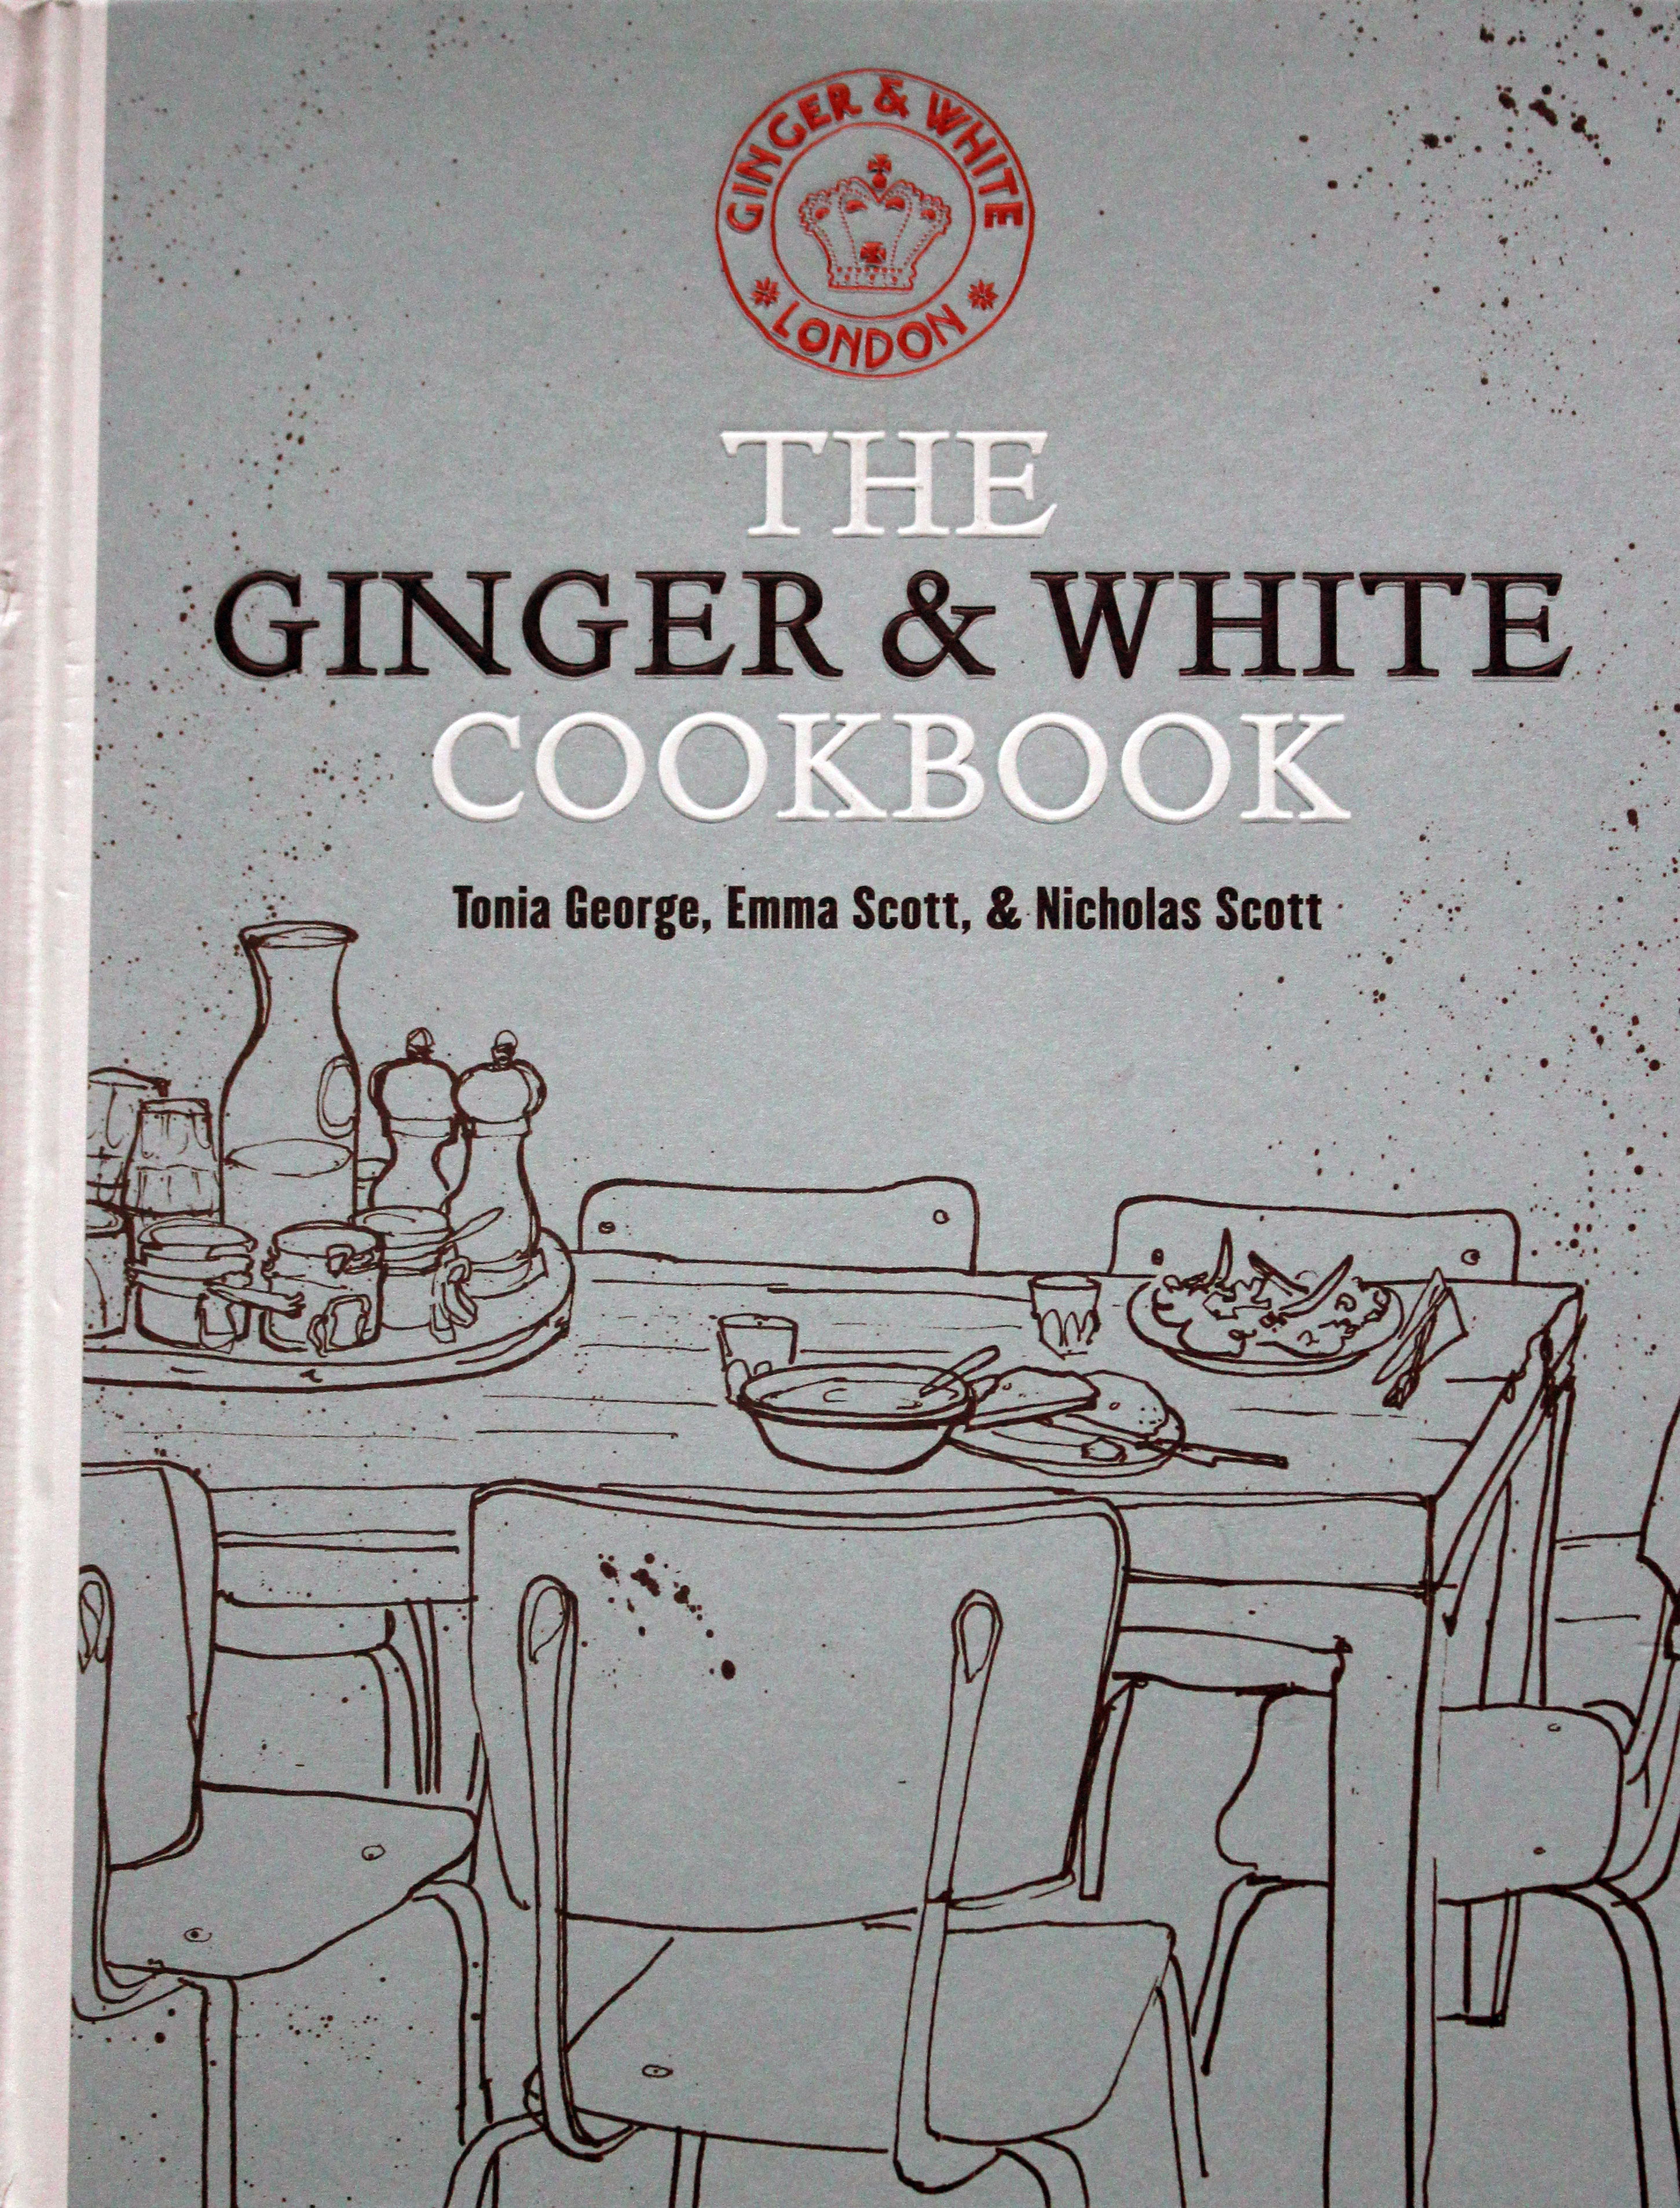 TBT Cookbook Review: The Ginger & White Cookbook